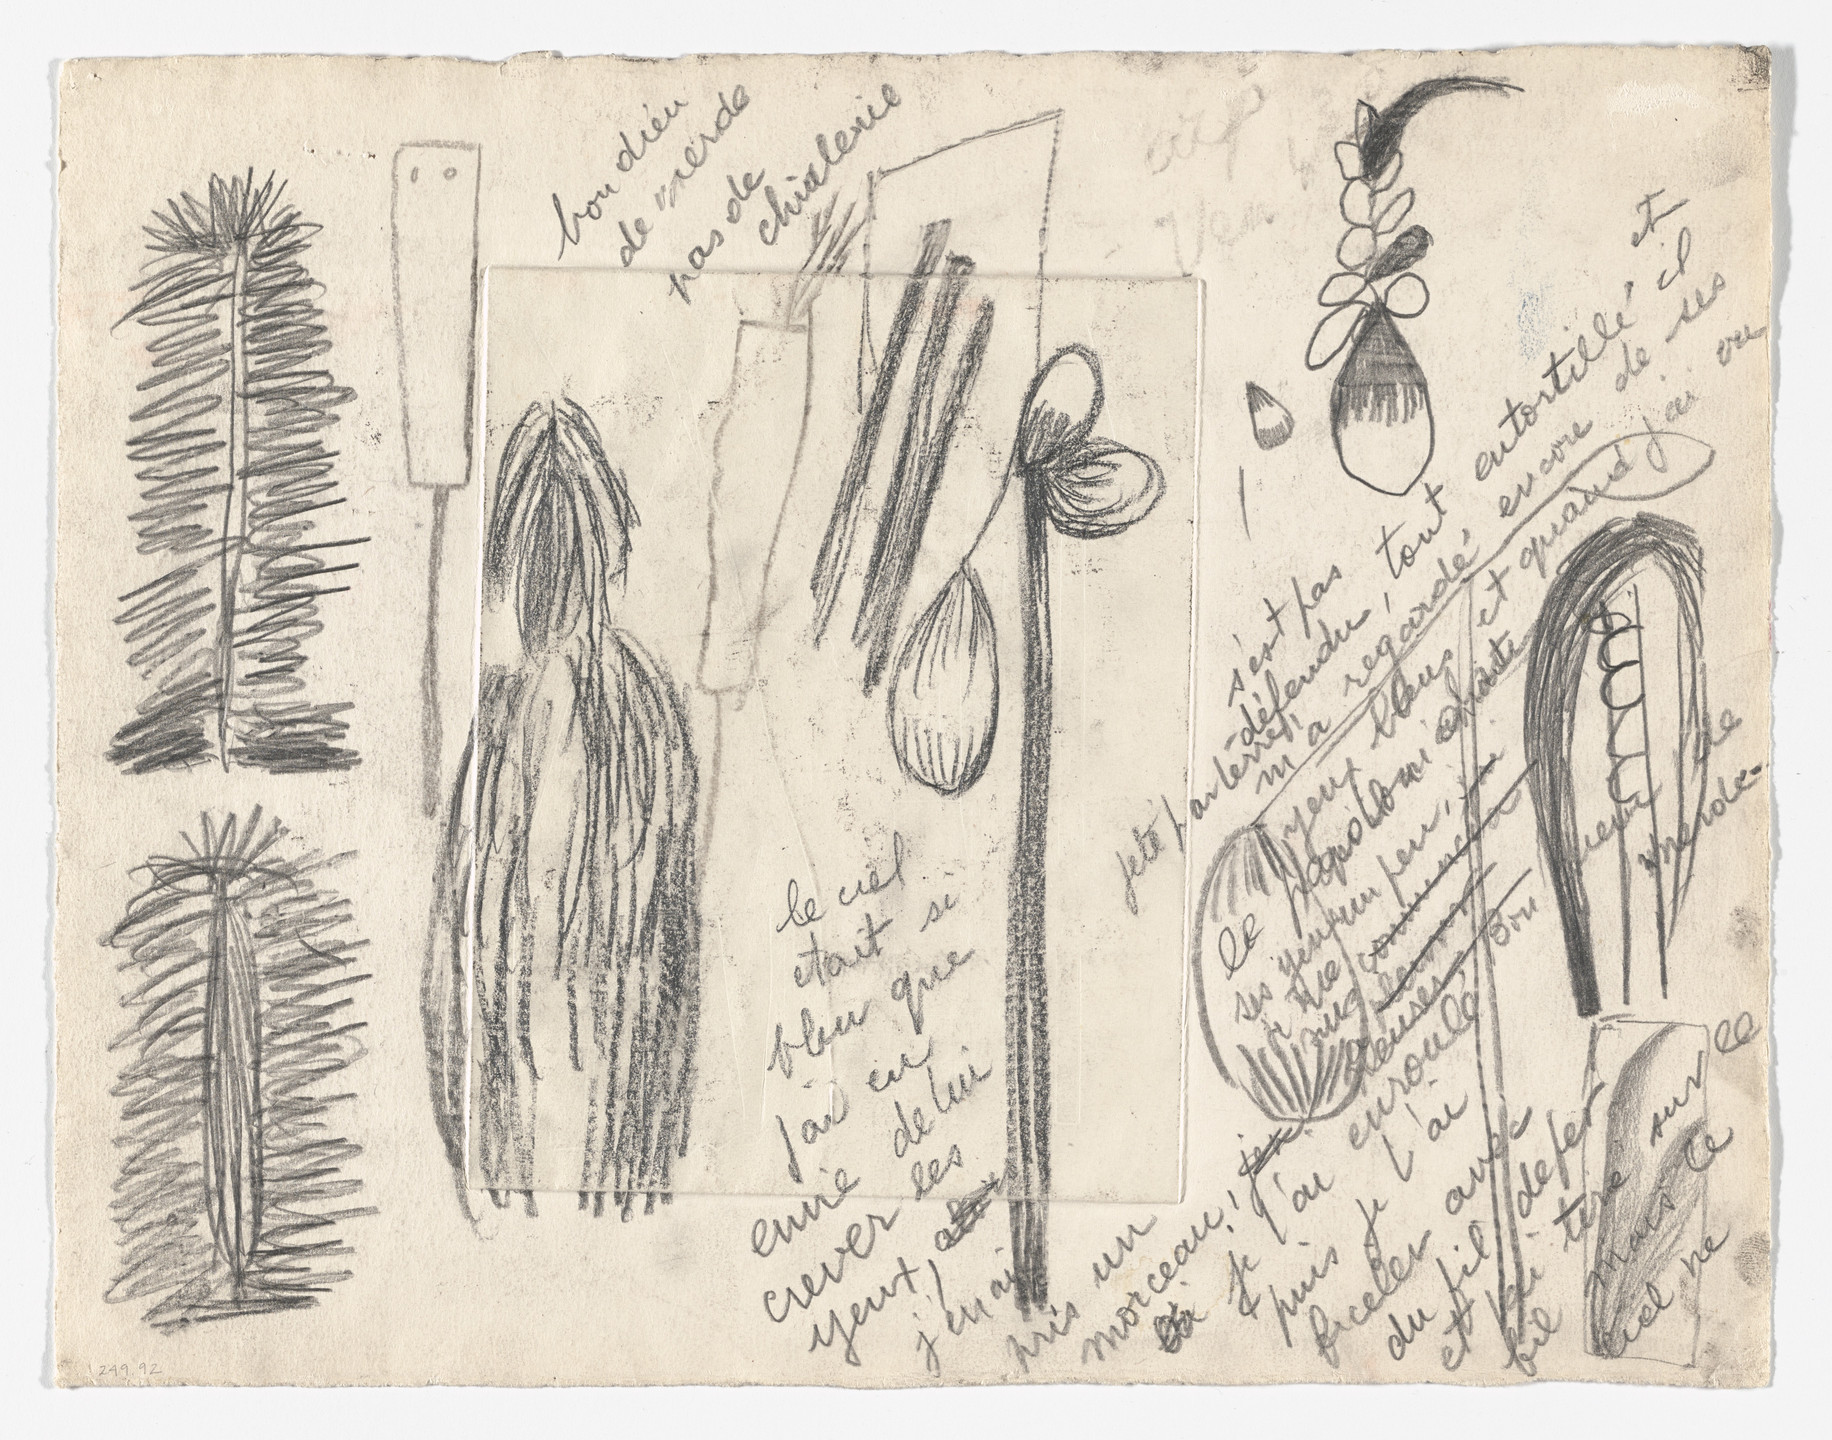 Louise Bourgeois. Untitled (verso of Famille). 1947-1949